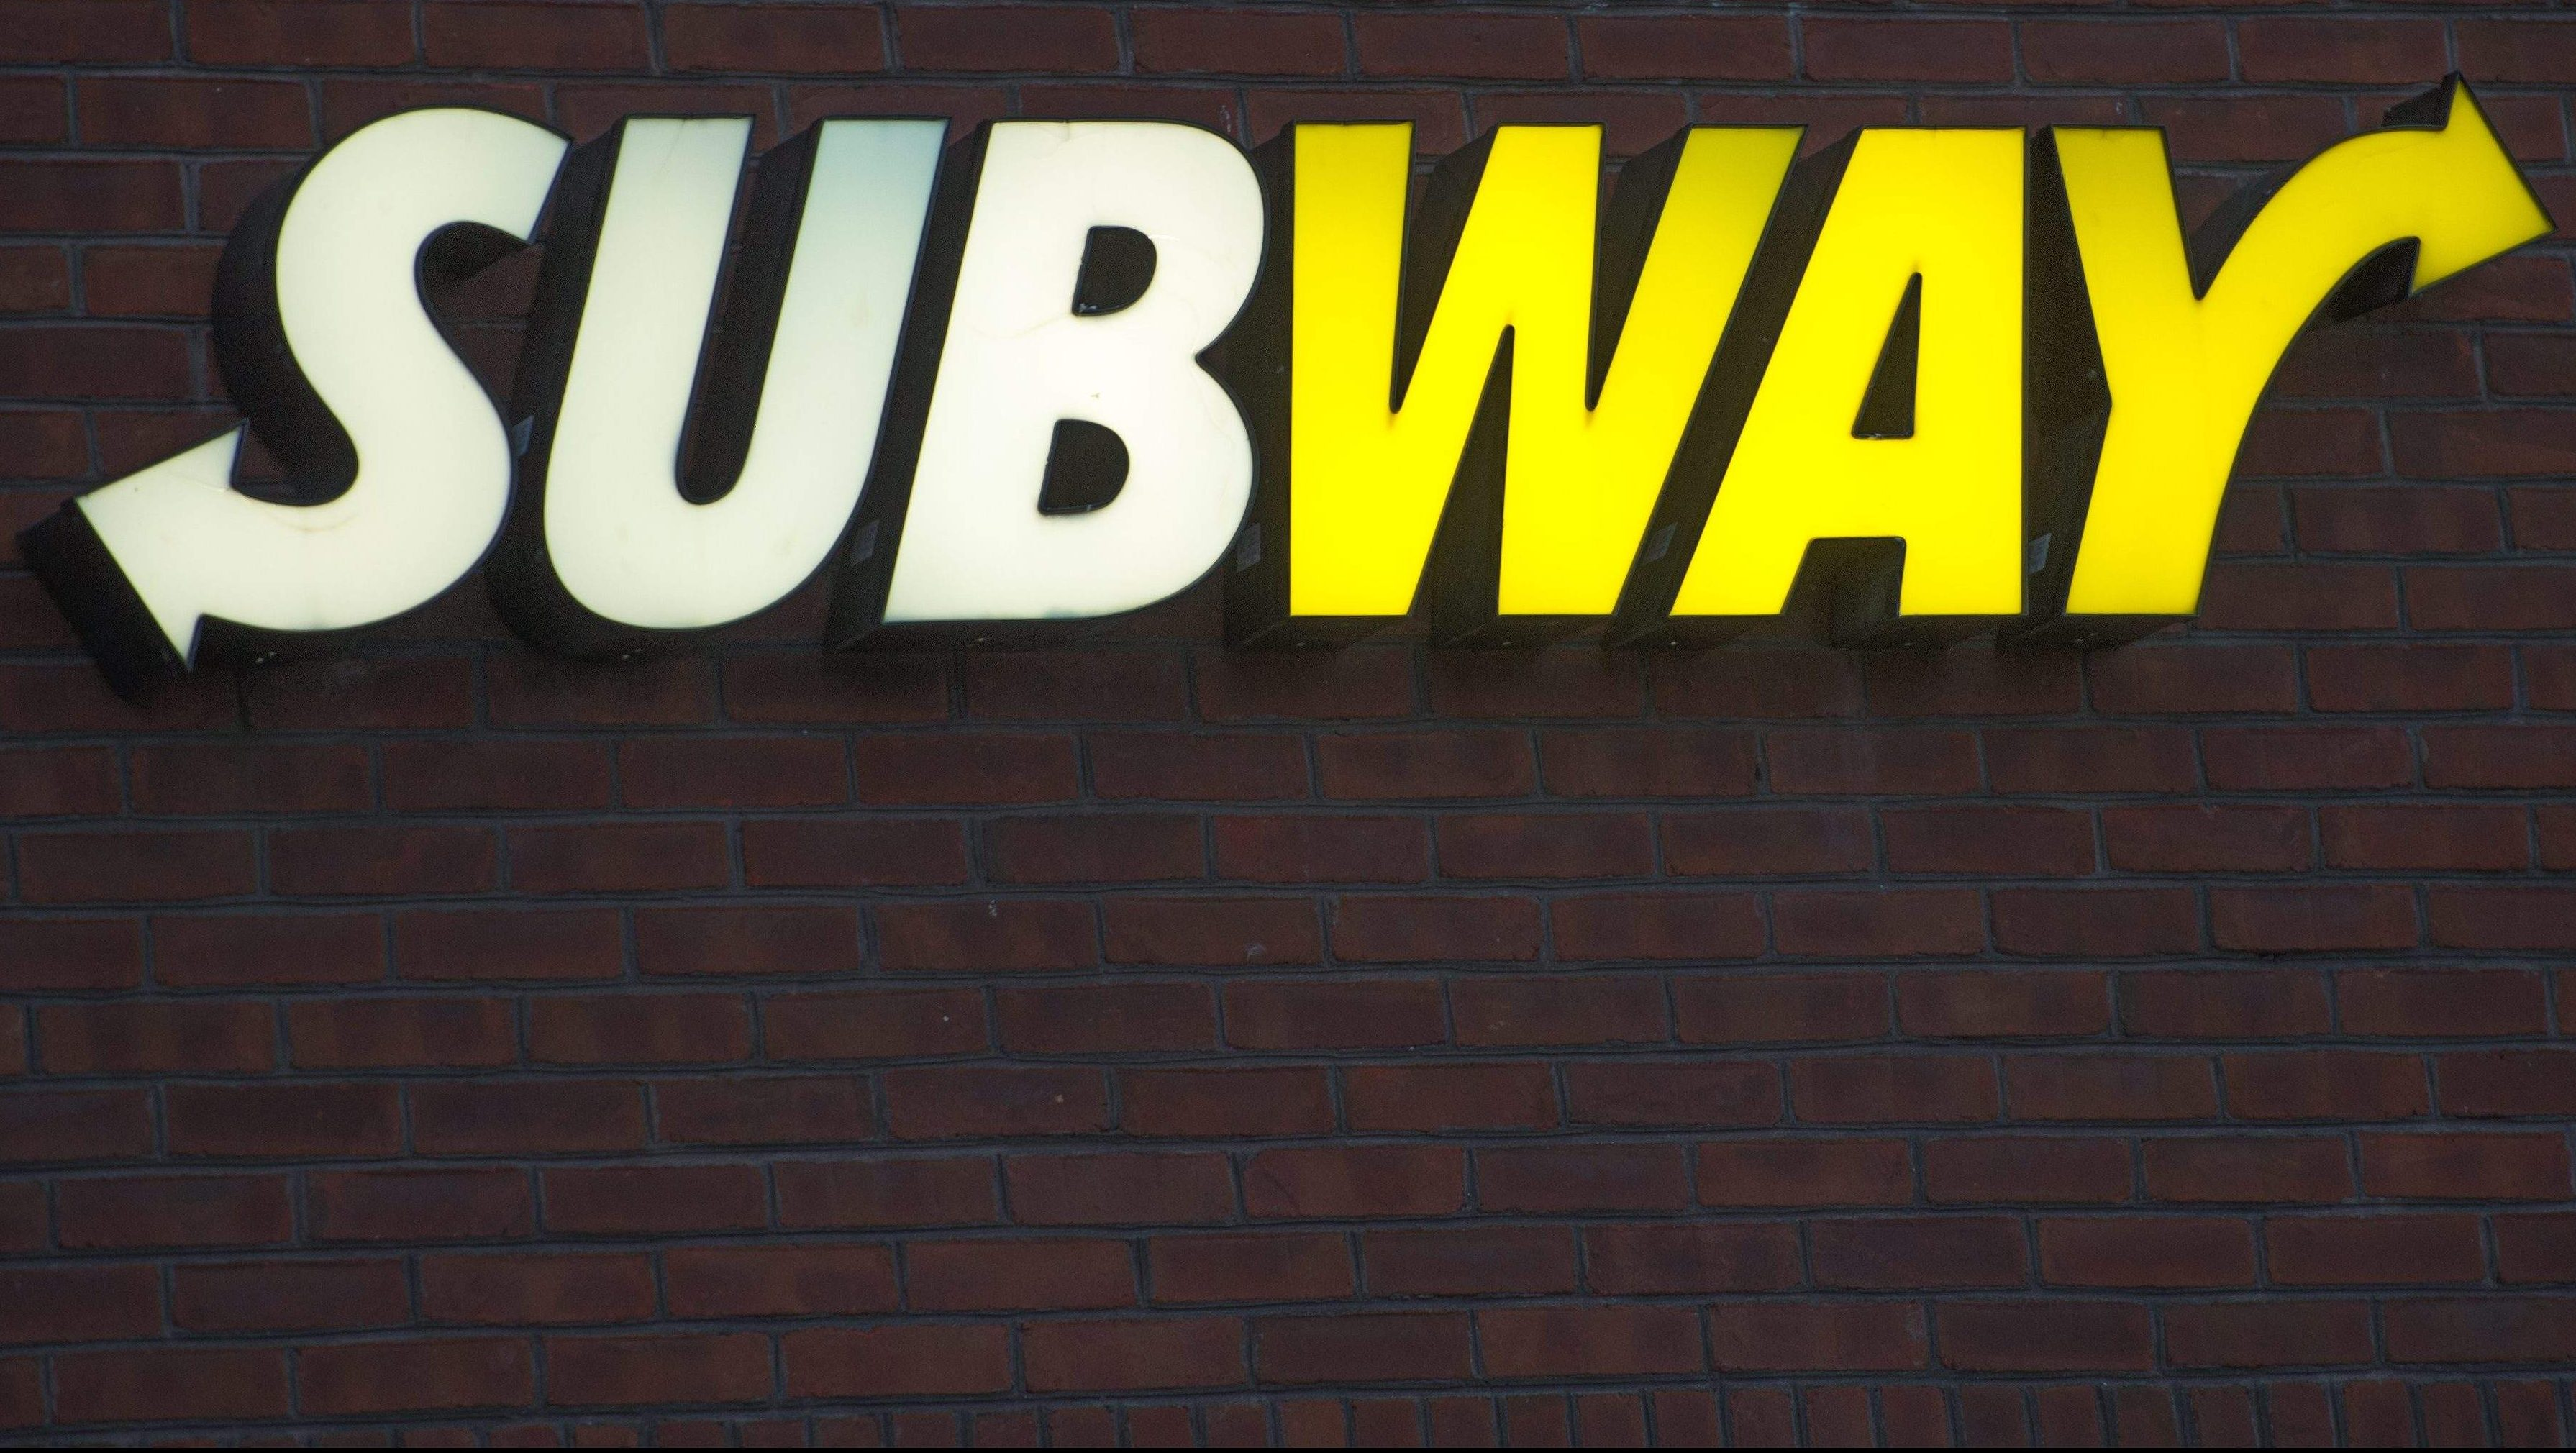 Is Subway Open On Christmas Day 2020 Is Subway Open on New Year's Eve & Day 2019 2020? | Heavy.com